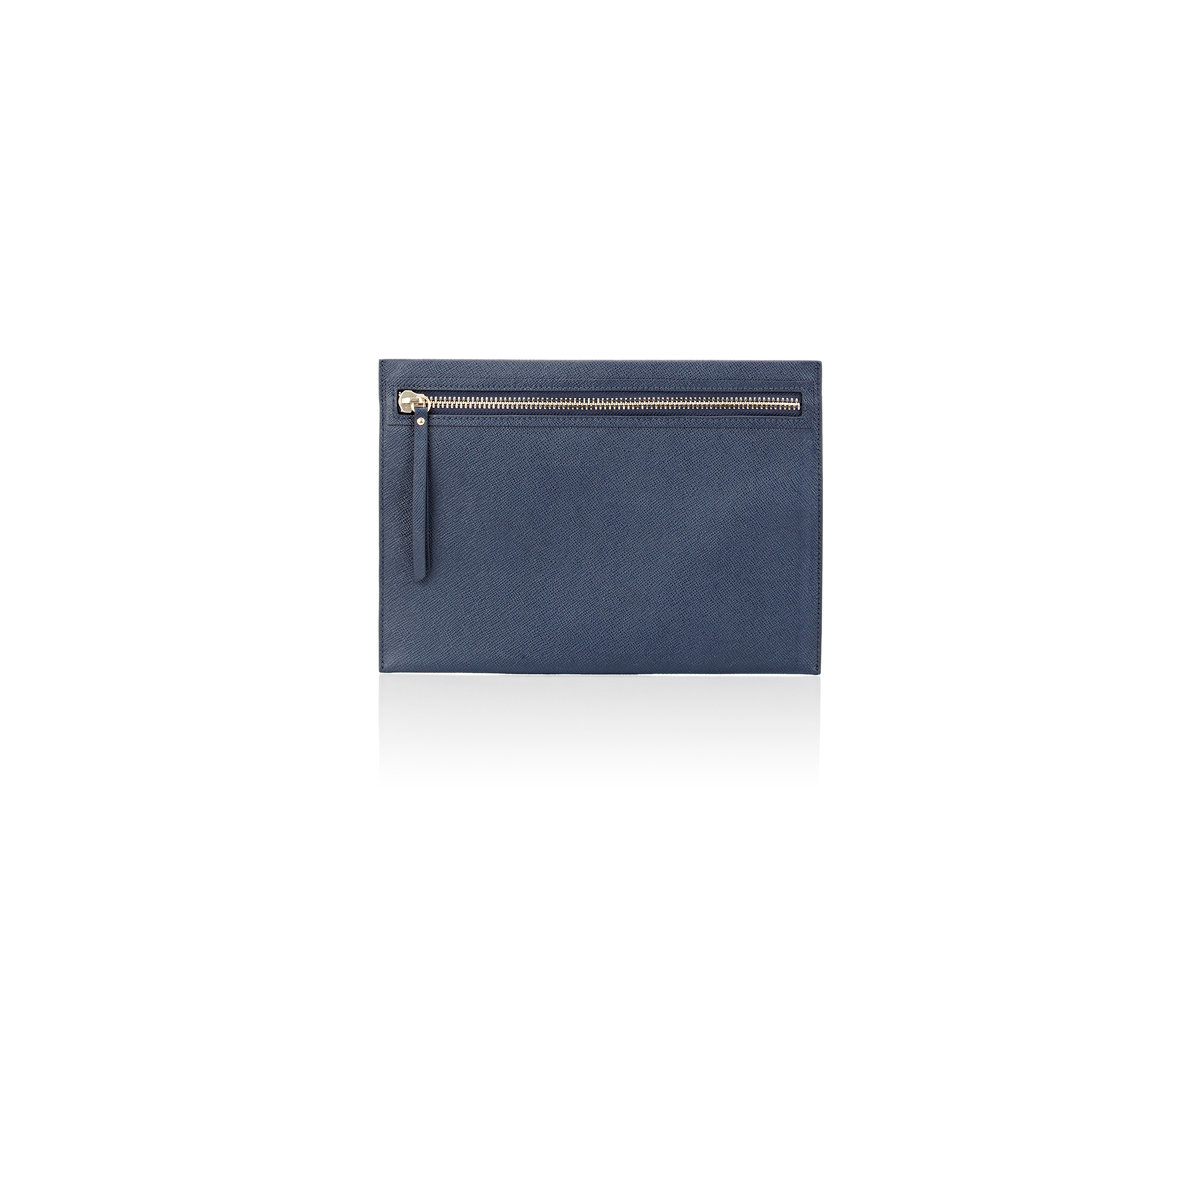 Barneys New York Large Pouch In Blue Lyst